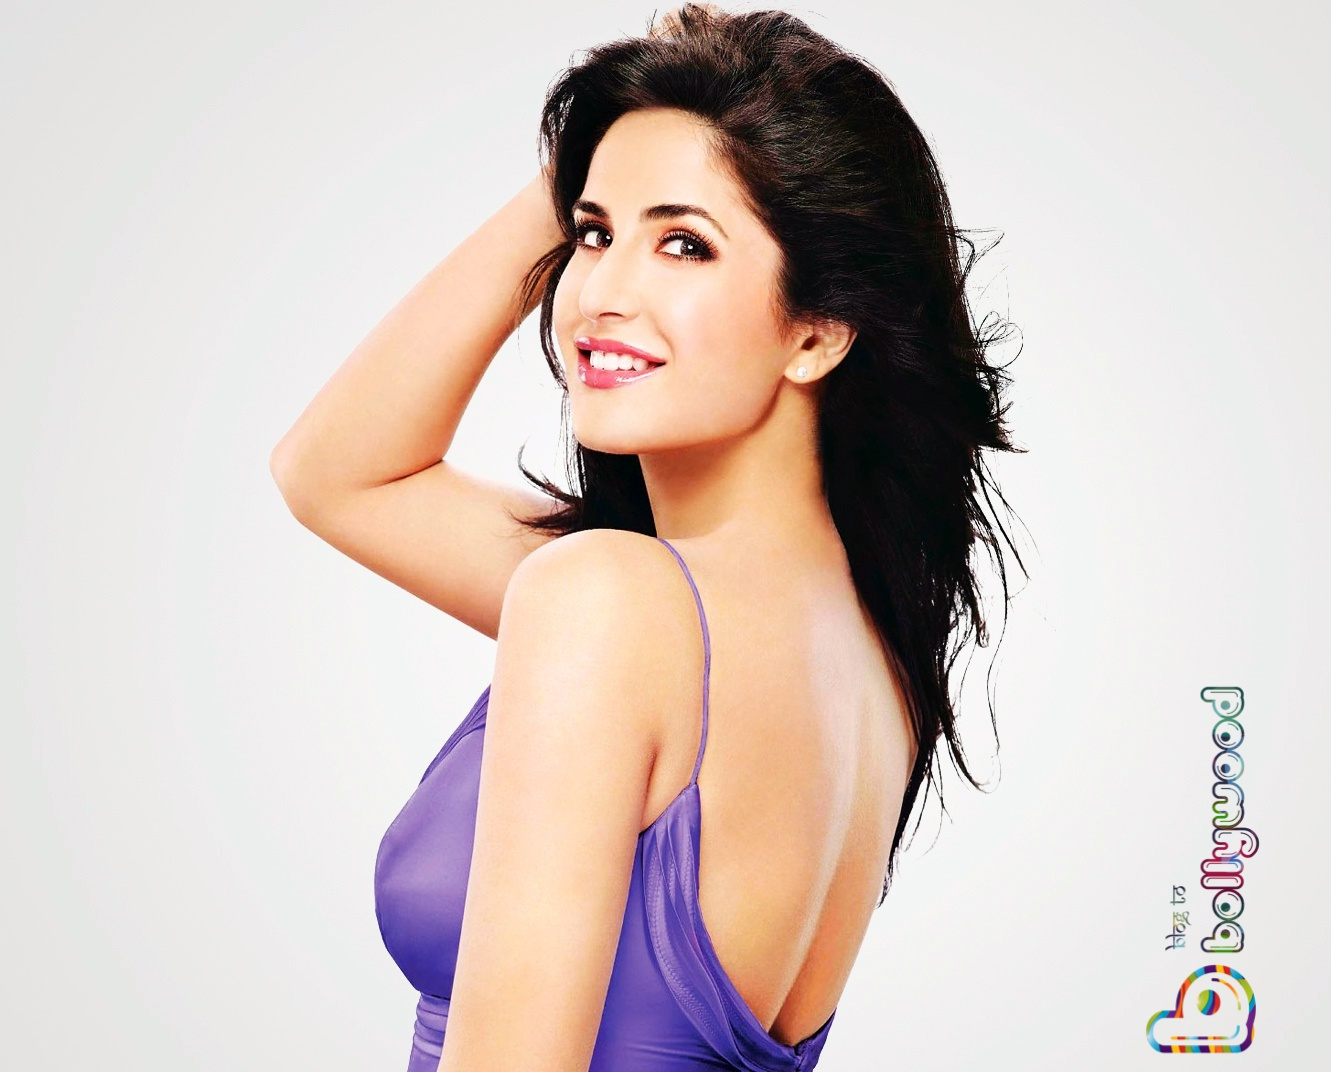 Katrina Kaif Hot Pics - 30 Smoking Hot and Sexy Photos